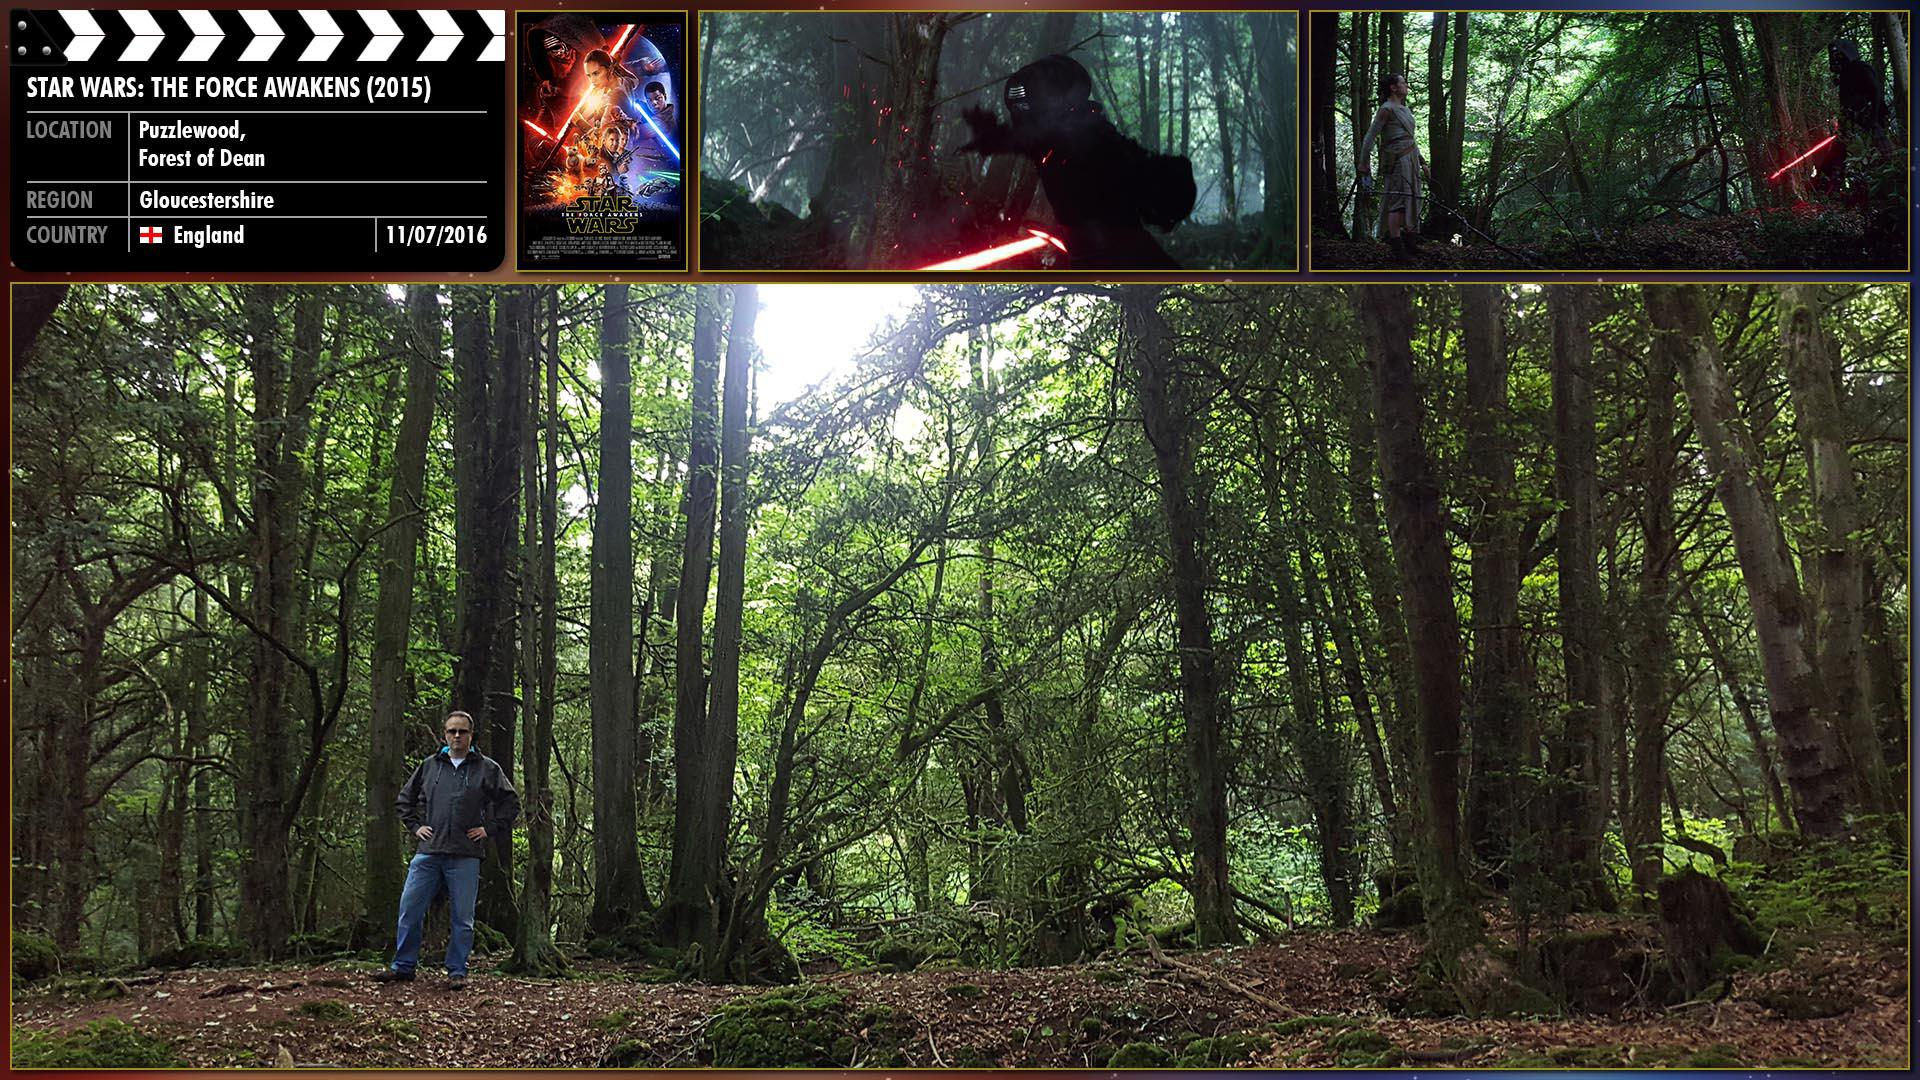 Filming location photo for Star Wars: The Force Awakens (2015) 5 of 17